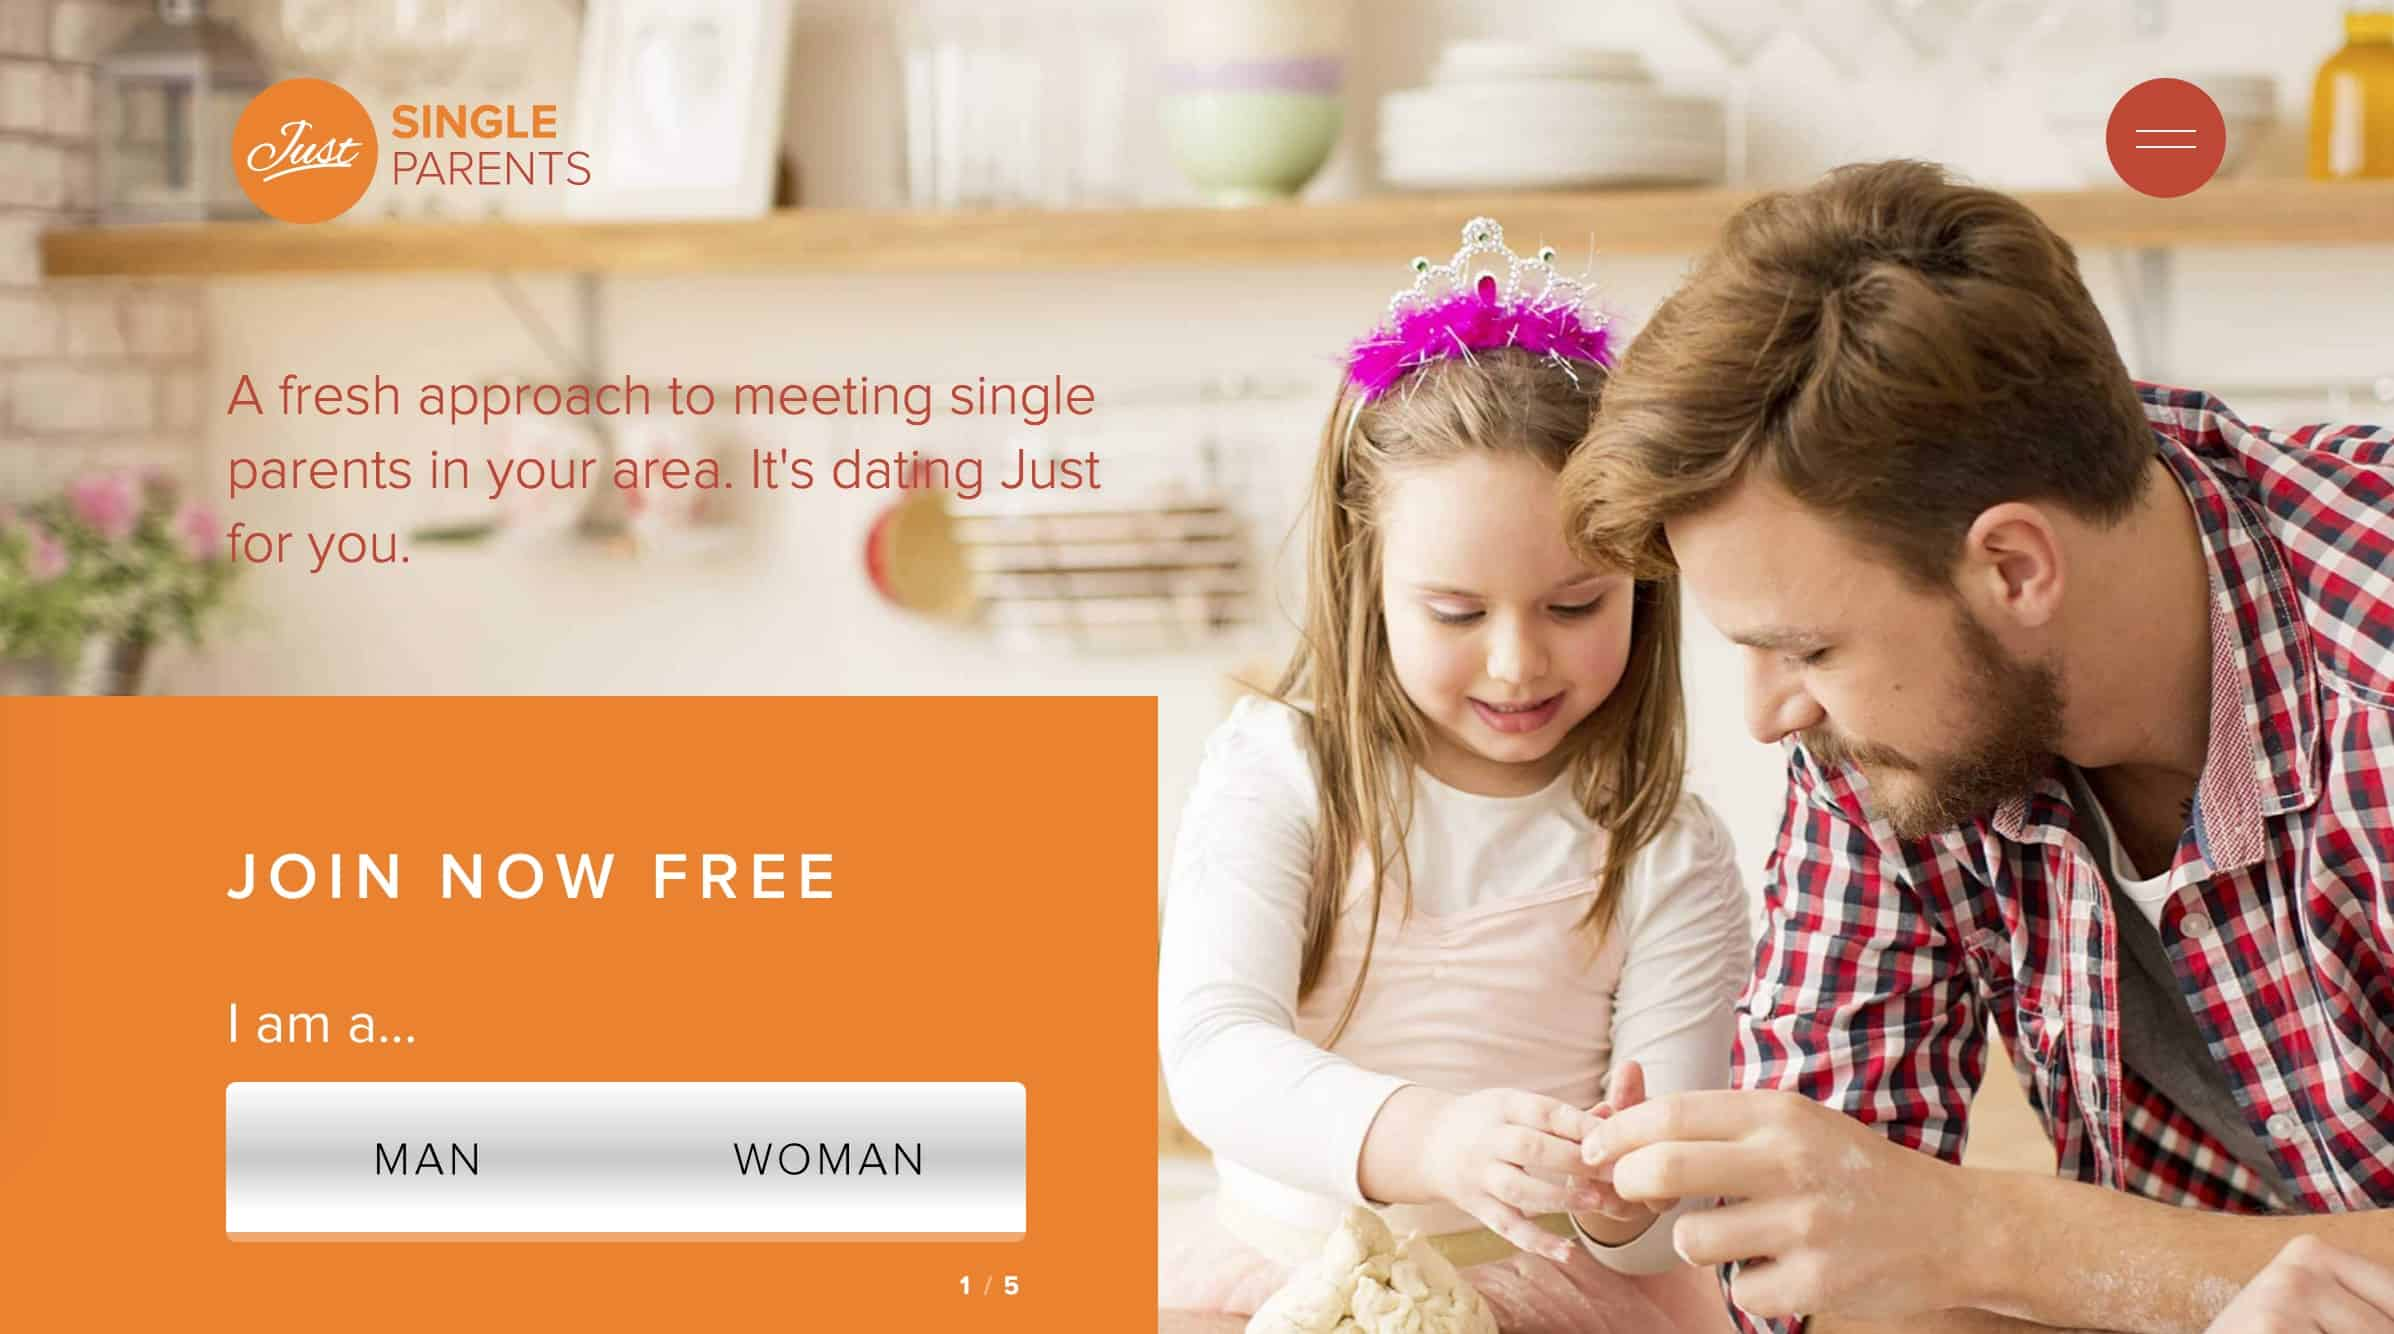 sidon single parent dating site Single parent dating sites - meet singles people in your local area, visit our dating site for more information and register online for free right now single parent dating sites therefore, join free internet dating sites to find friends online is the first startup.